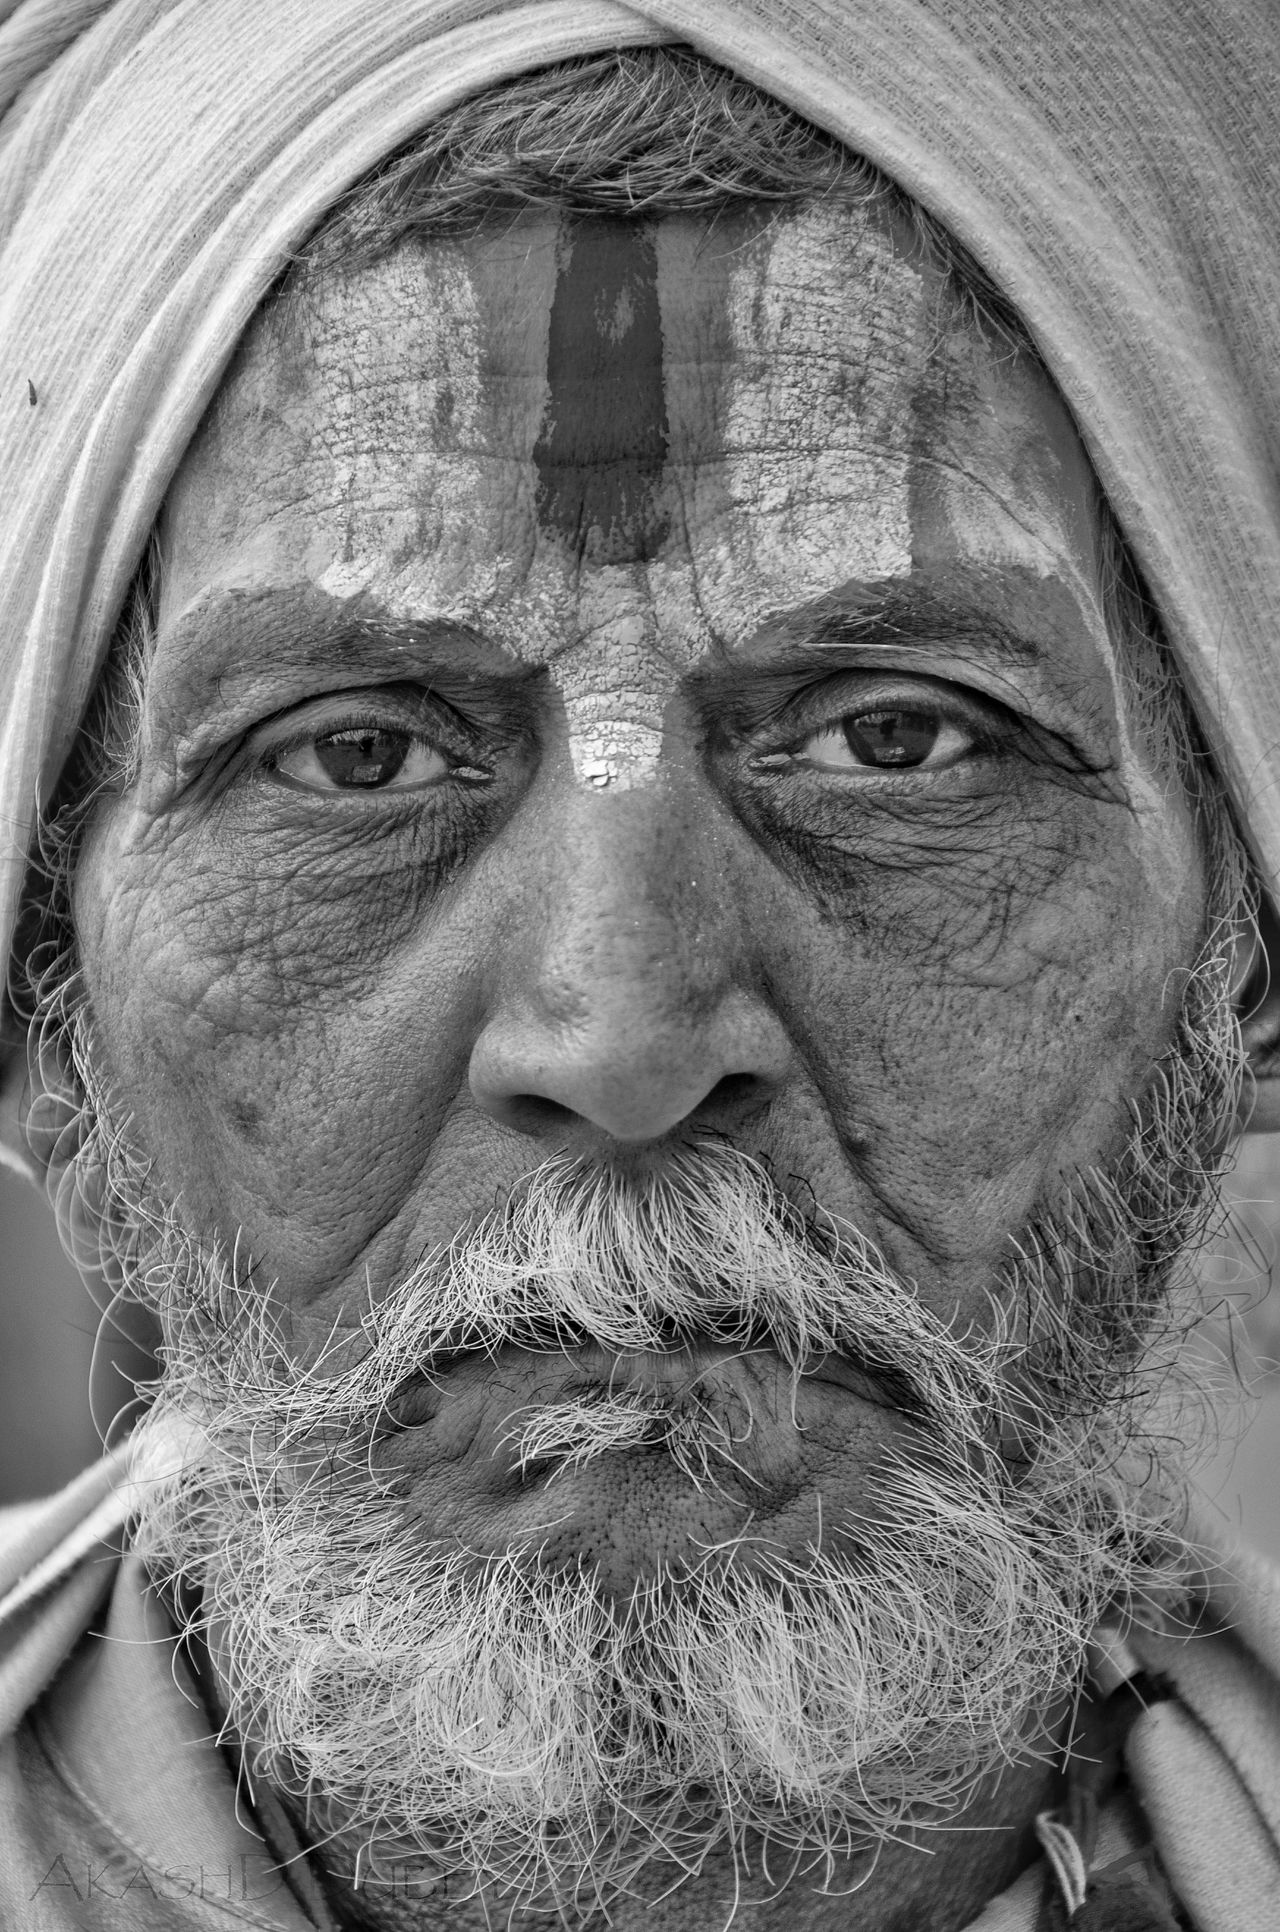 Expressions of the eyes Portrait Close-up PortraitPhotography Eye Blackandwhite Blackandwhite Photography Black&white Black And White Saint Sadhu Of India Sadhu Sadhu From India Baba INDIA Varanasi India Varanasi, India Ganges, Indian Lifestyle And Culture, Bathing In The Ganges, Varanasi Varanasi Ghats Kashi